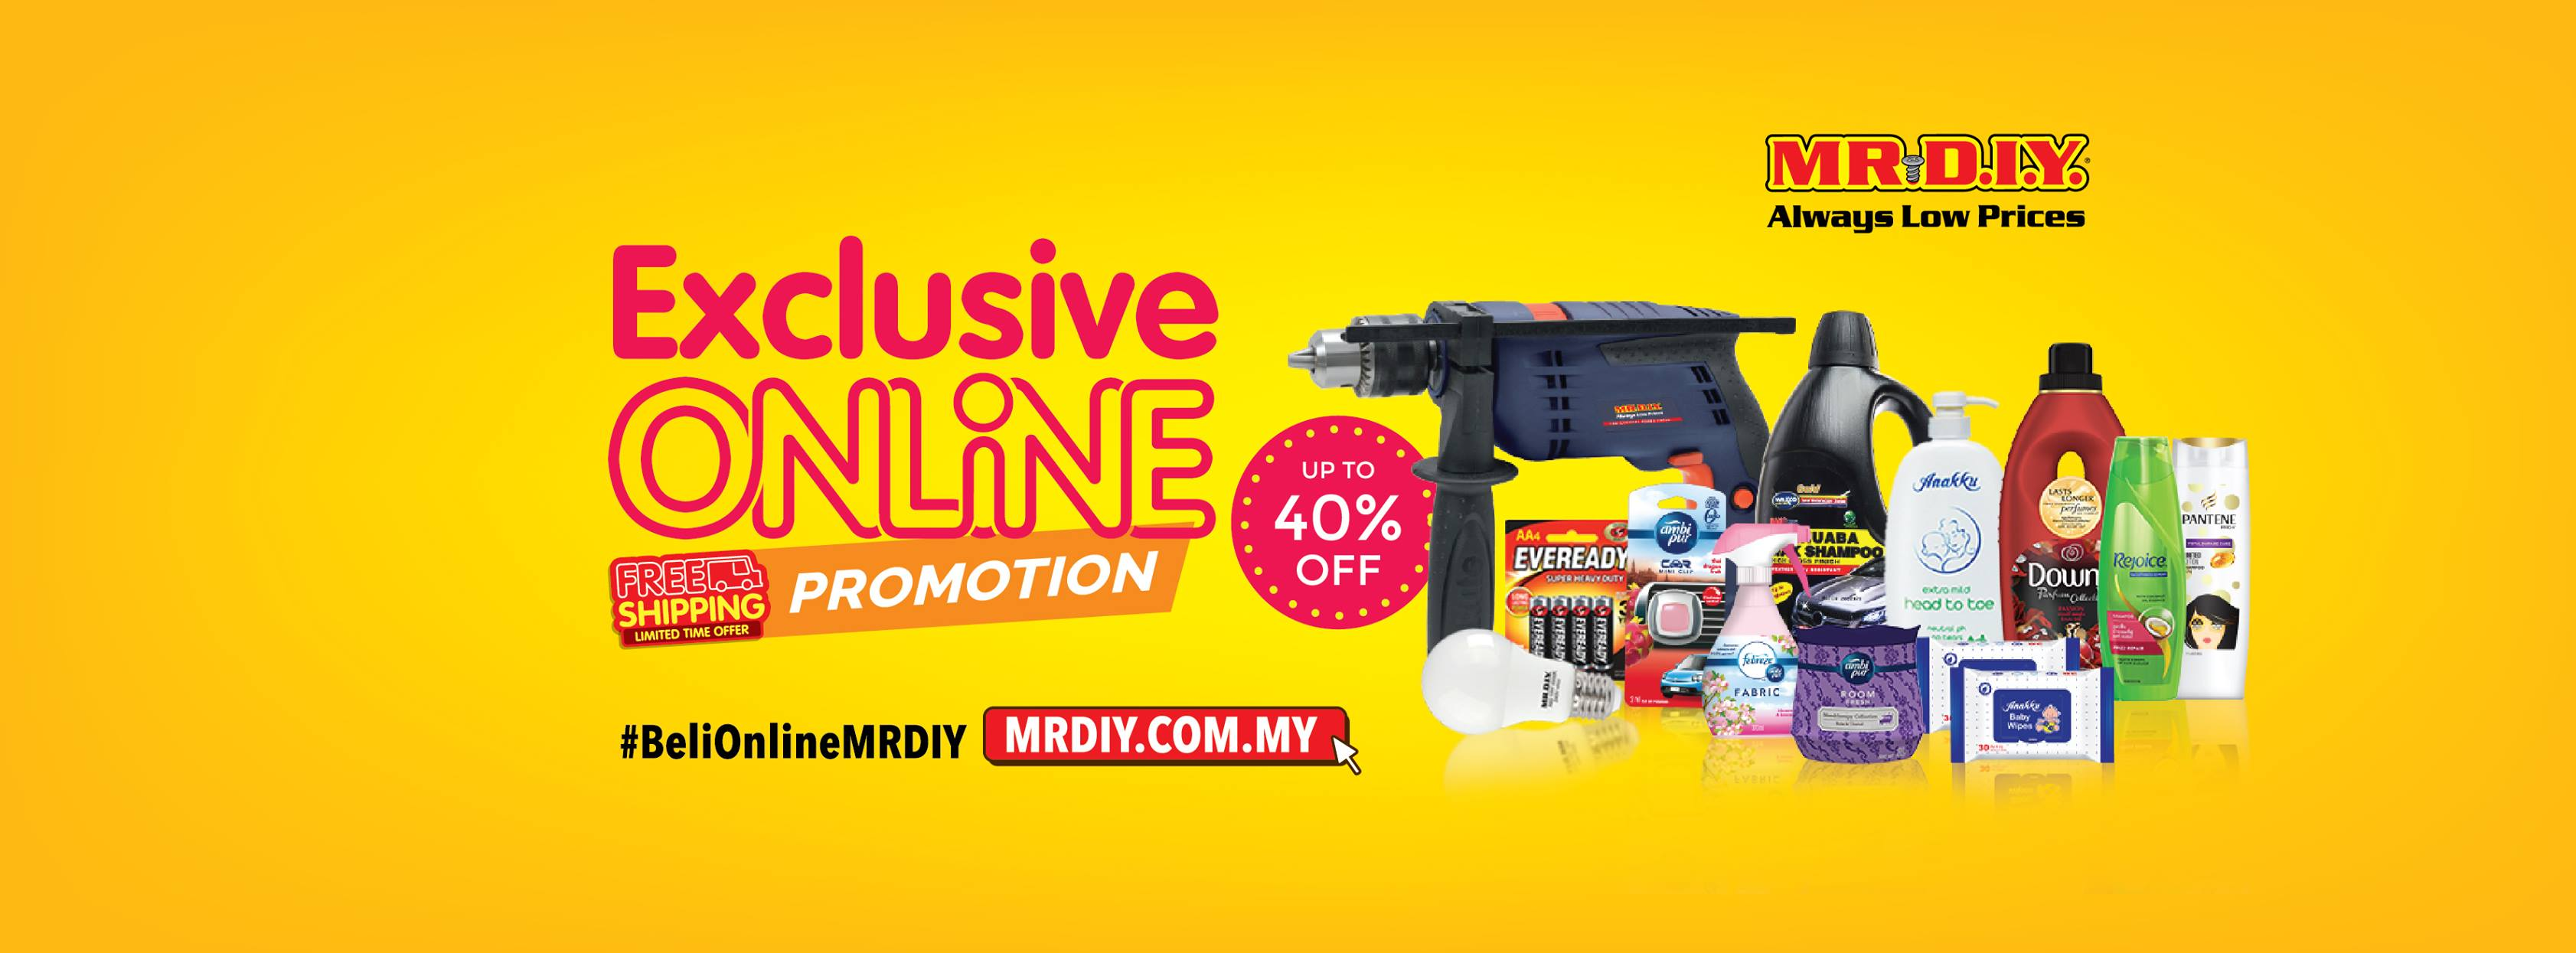 Promosi Eksklusif Online MR. DIY